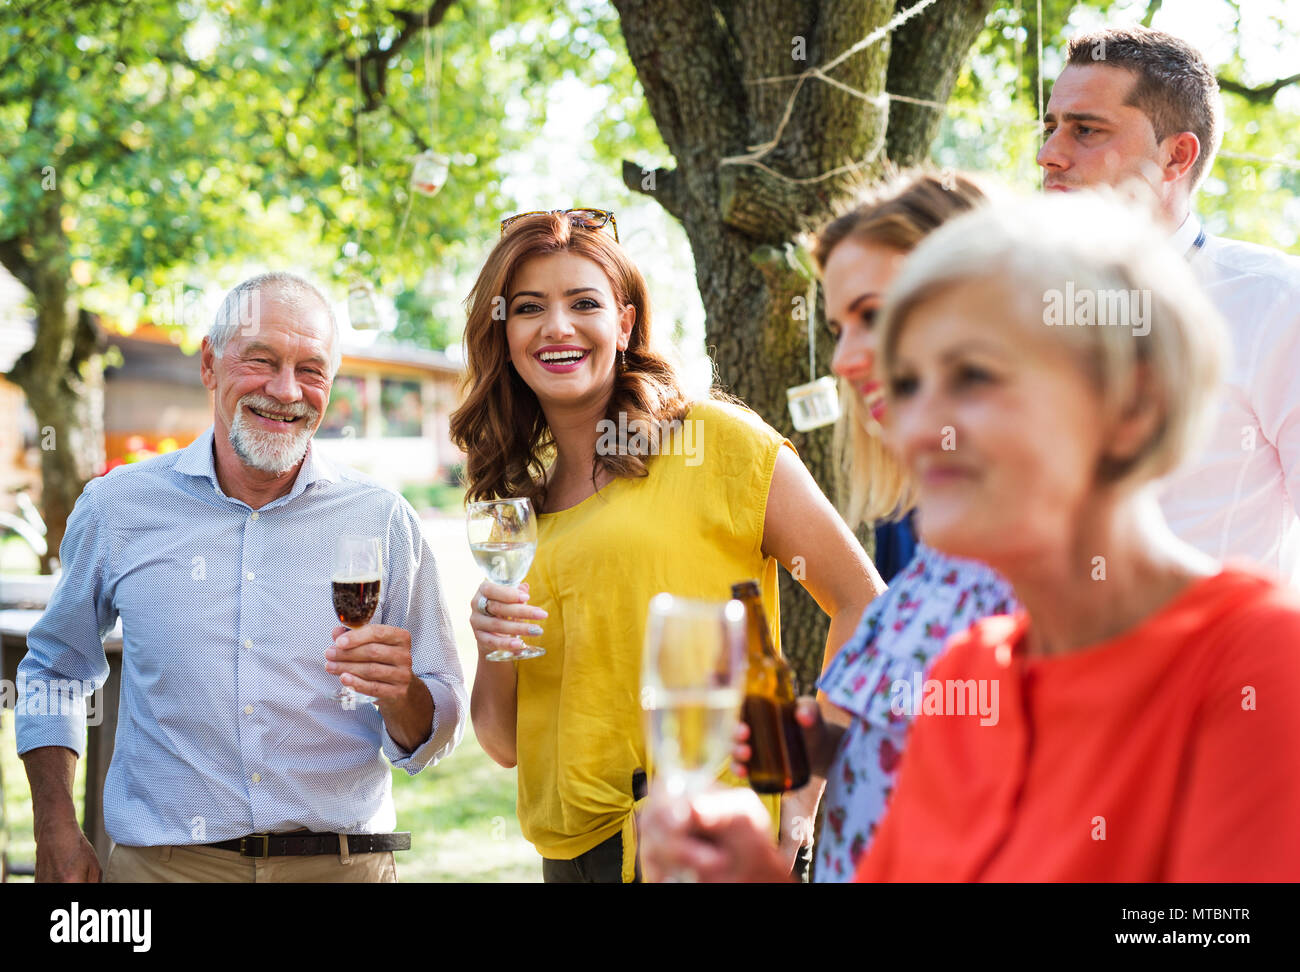 Family celebration or a garden party outside in the backyard. - Stock Image